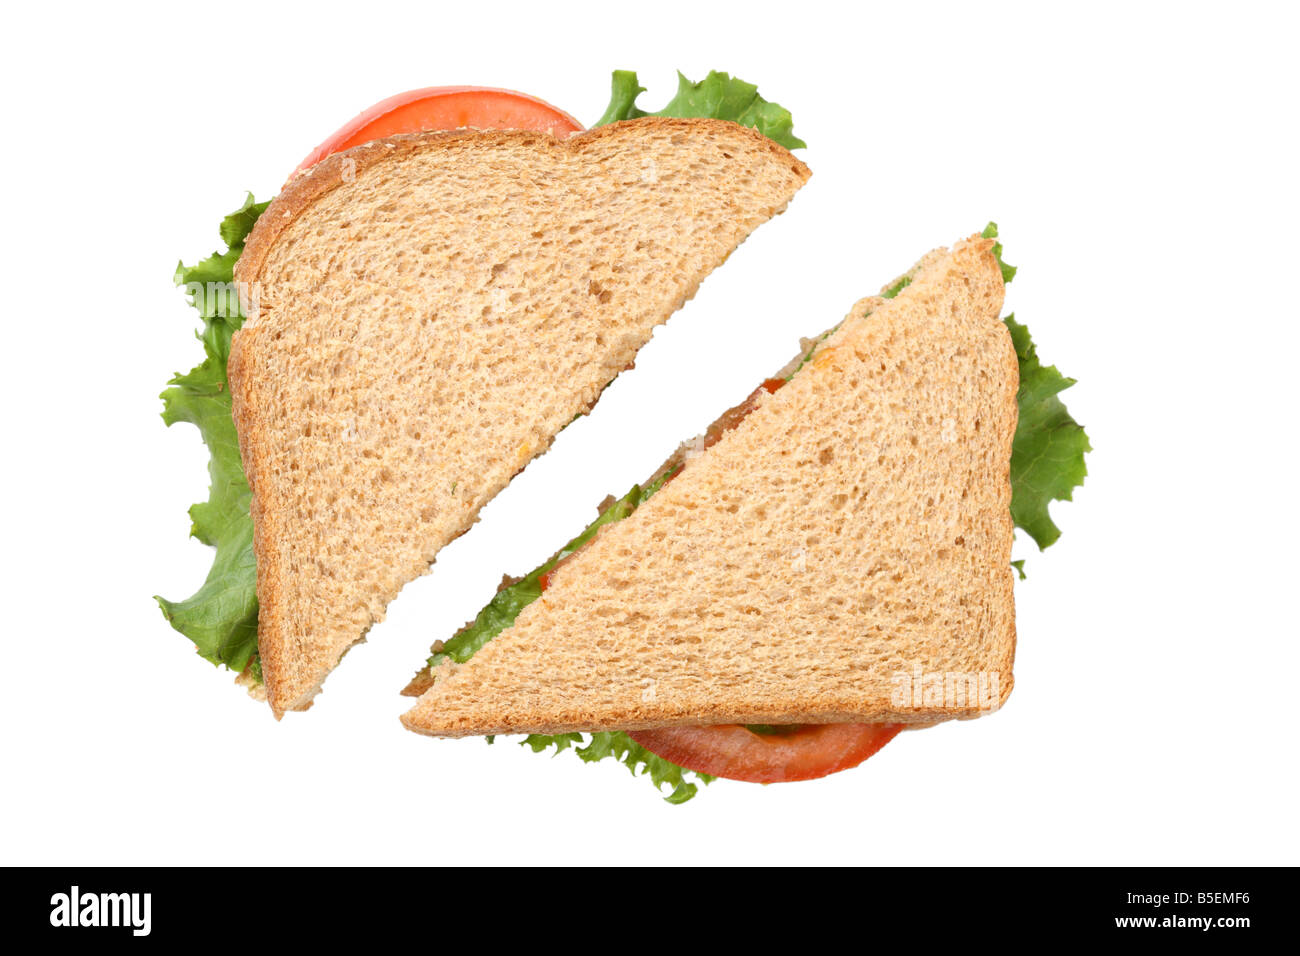 Sandwich cut in half cutout on white background - Stock Image